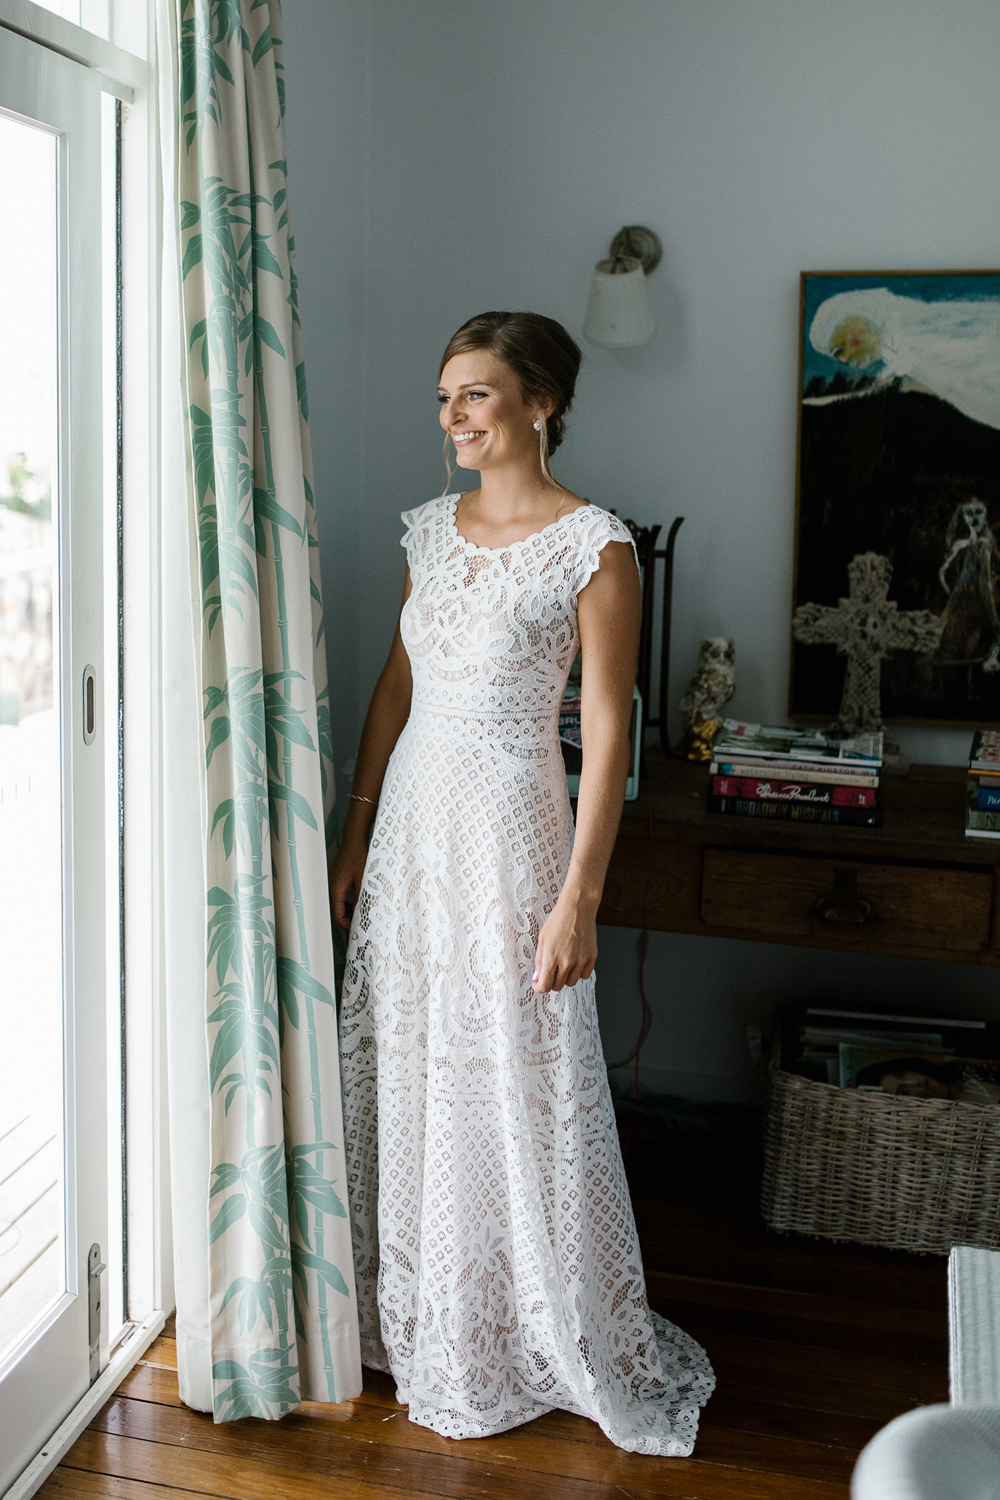 029-Byron-Bay-Wedding-Photographer-Carly-Tia-Photography.jpg